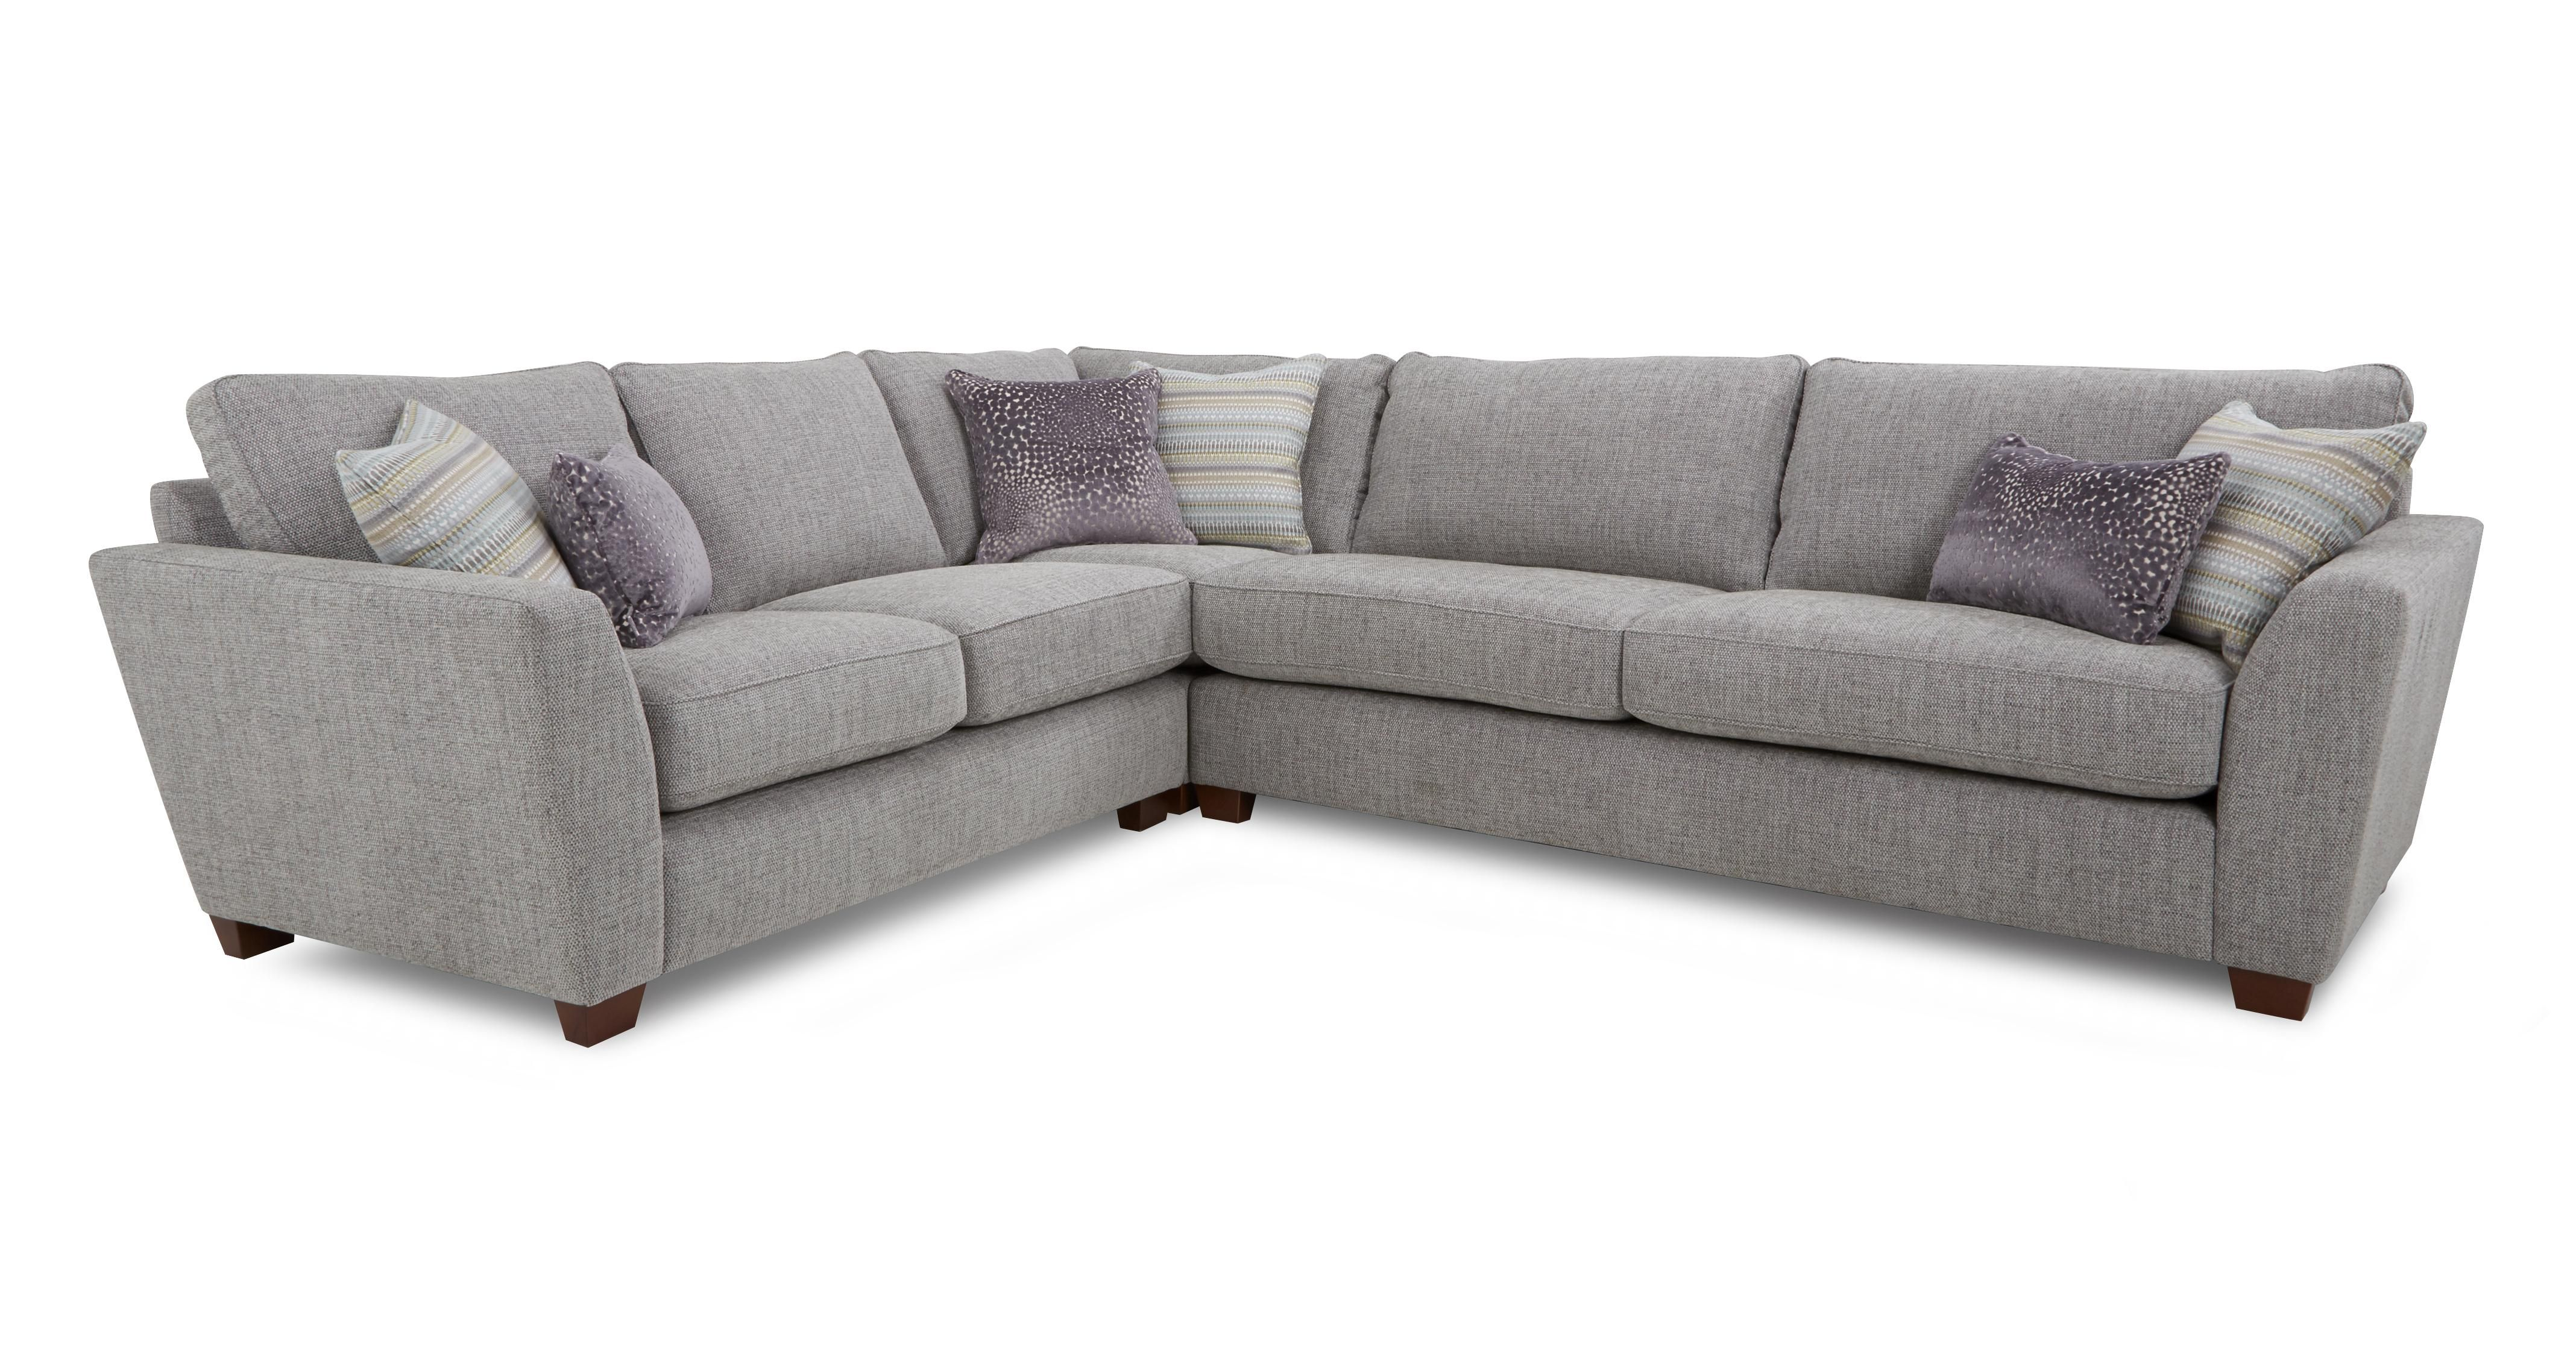 reputable site 38705 80c5a Sophia Right Hand Facing 3 Seater Corner Group Sophia | DFS ...